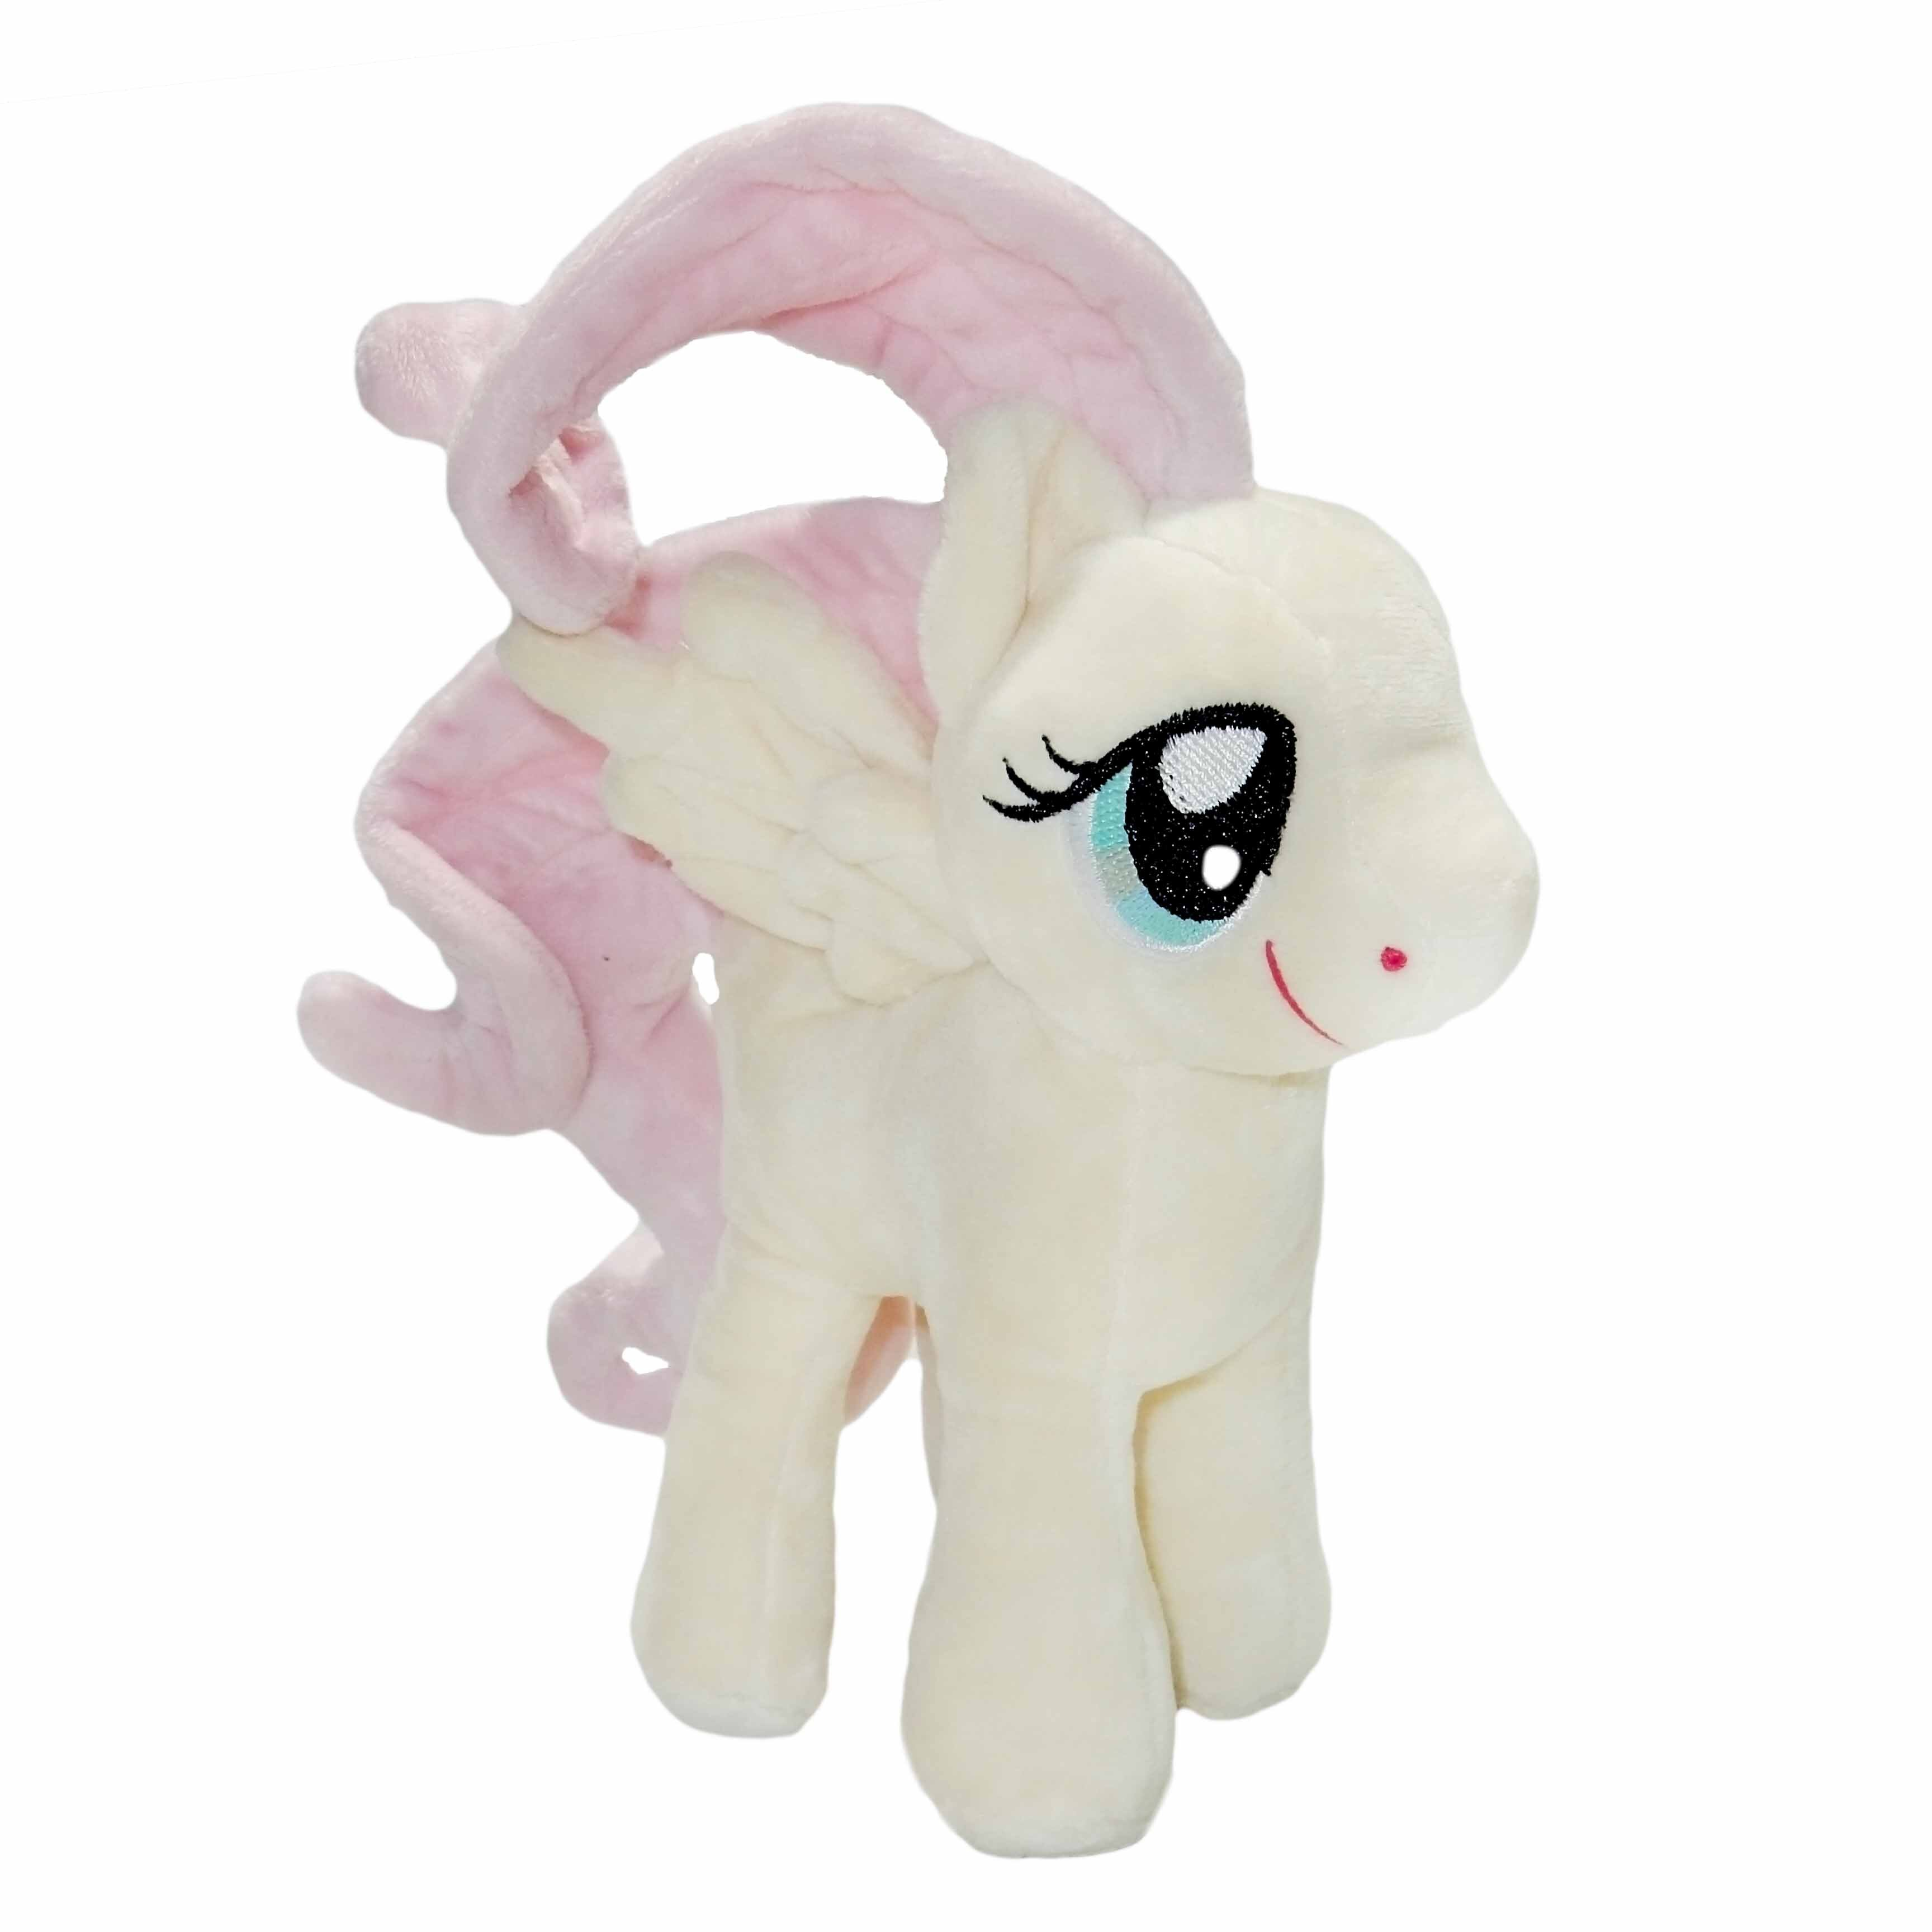 Пони  Флаттершай 22см 2063884/MLPE1C MY LITTLE PONY   HASBRO